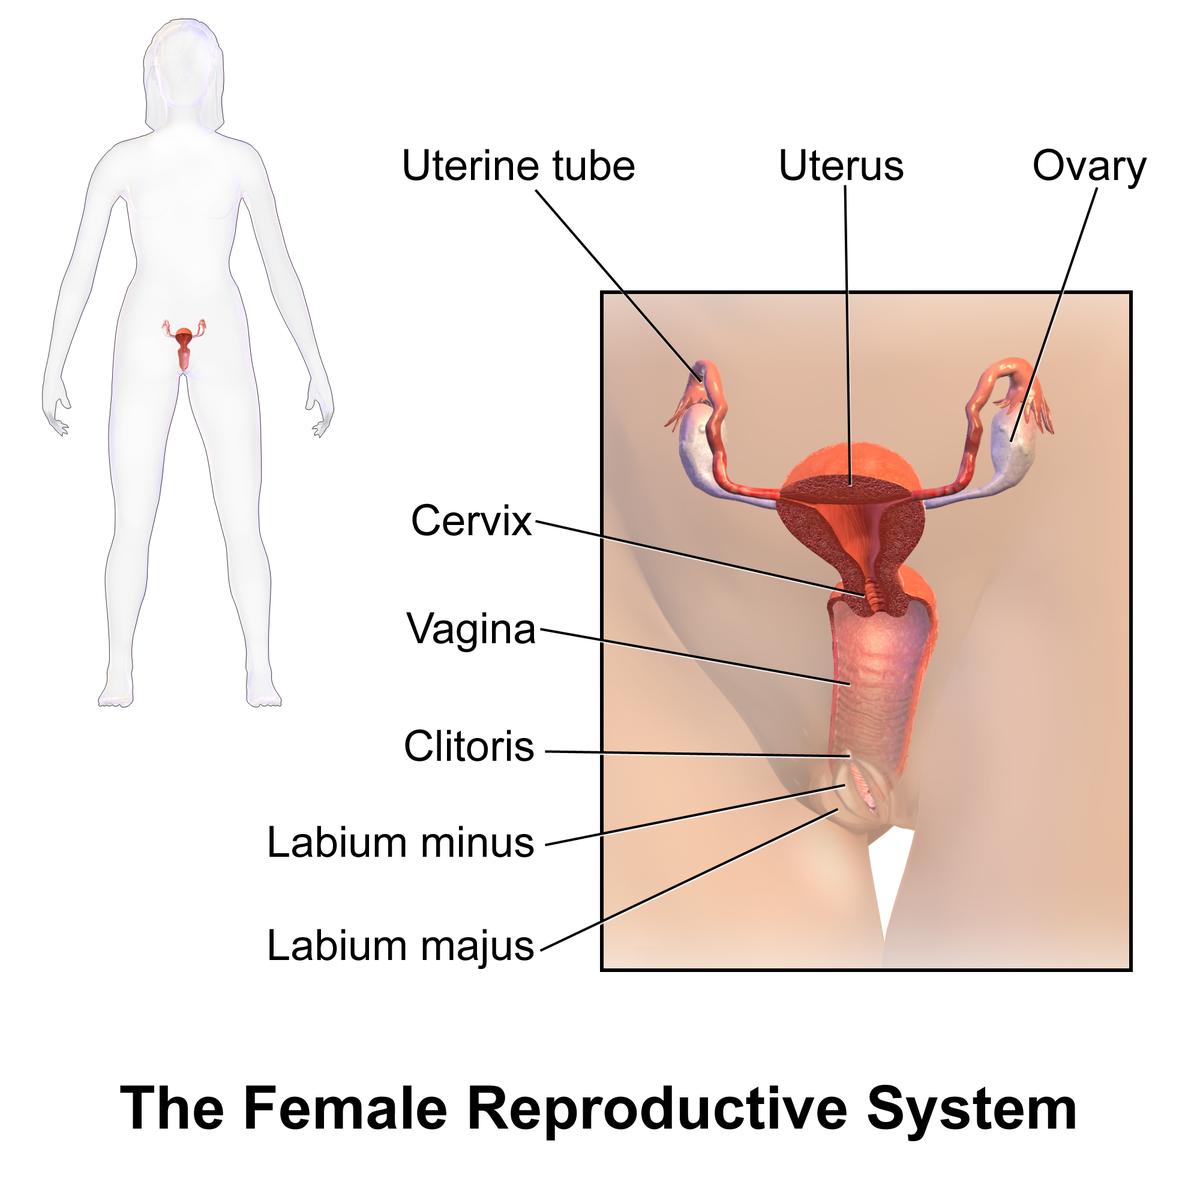 the female genitalia